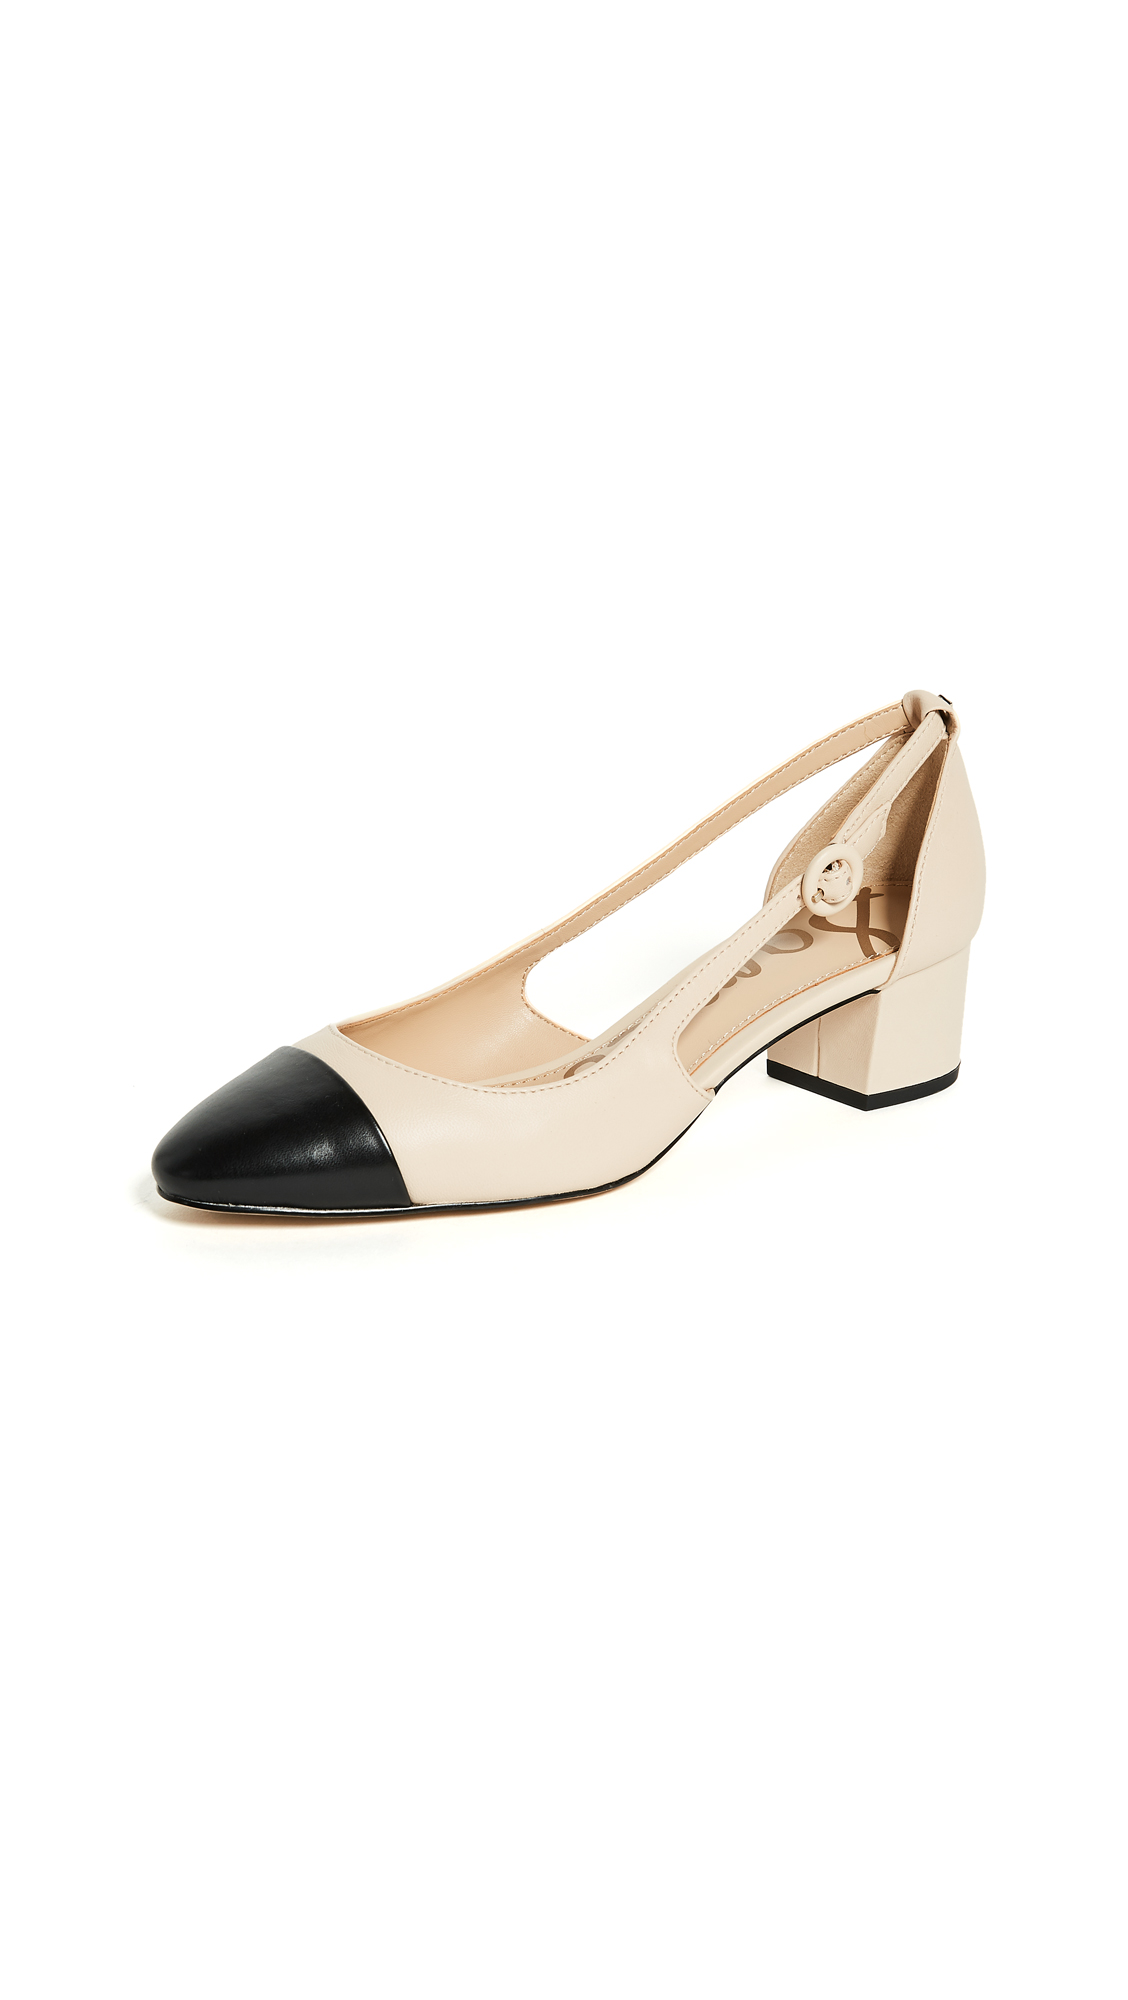 Sam Edelman Leah Cap Toe Pumps - Summer Sand/Black